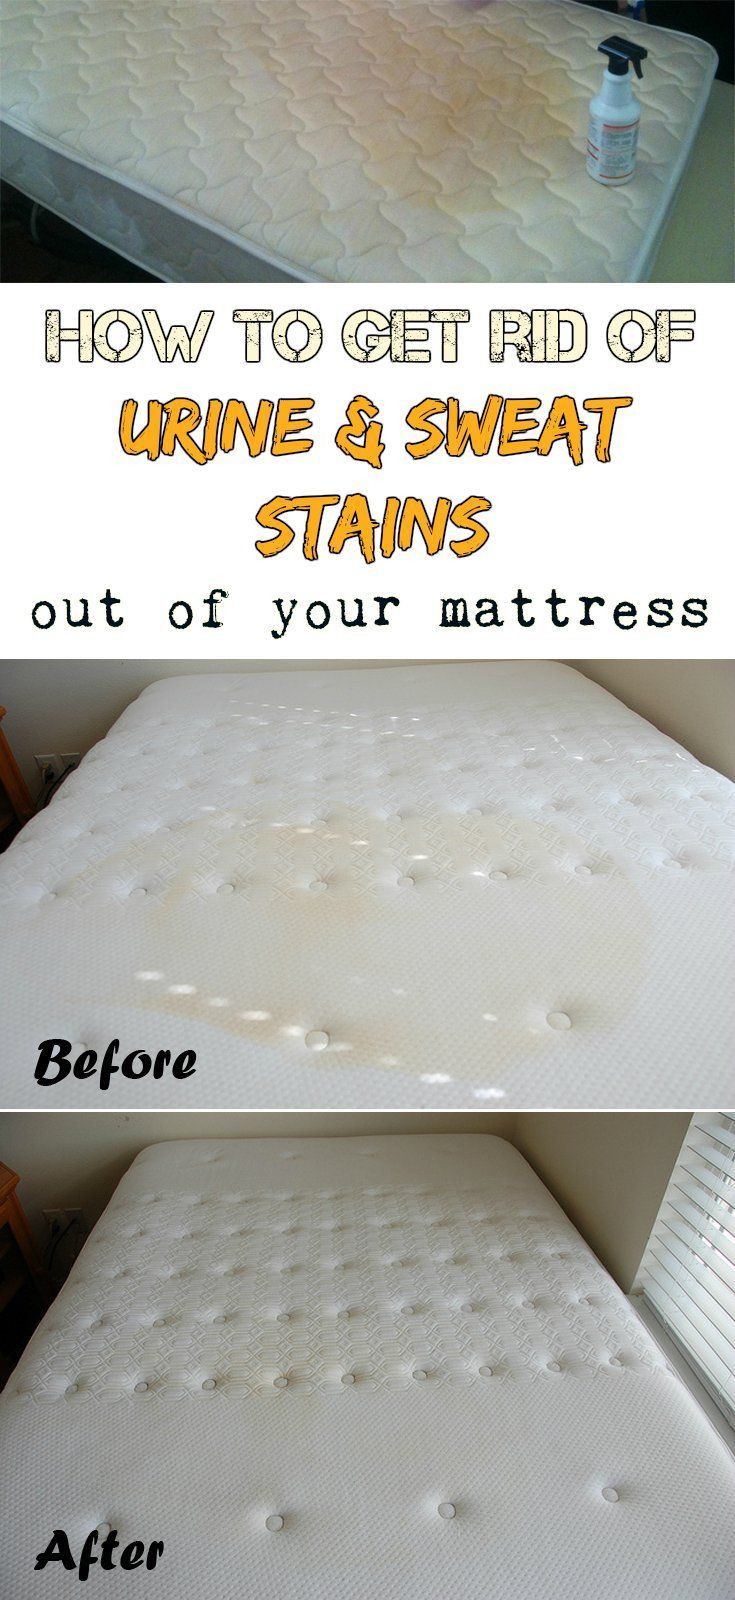 49 best cleaning mattresses images on pinterest cleaning hacks